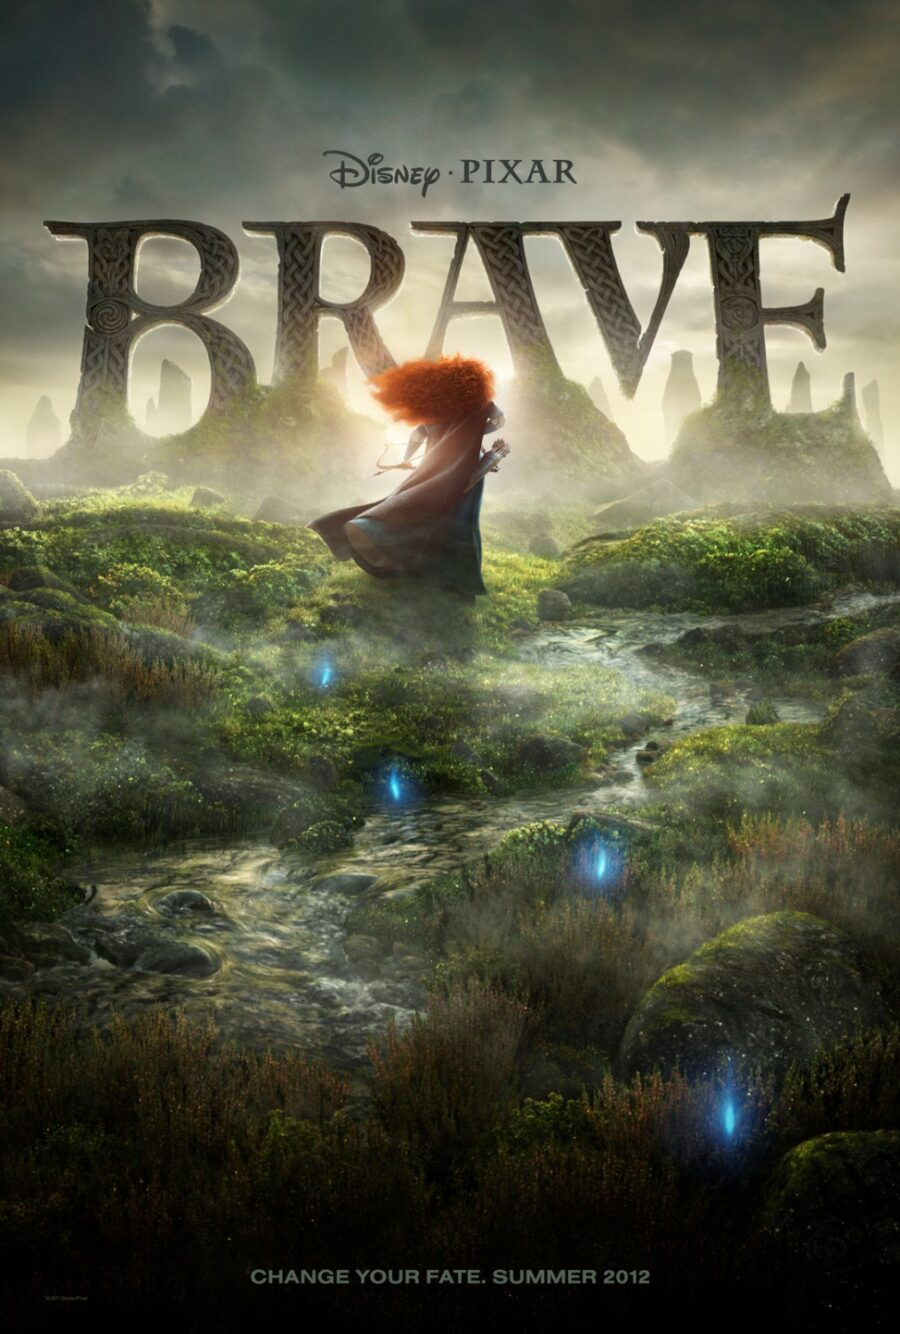 Pixar movie Brave